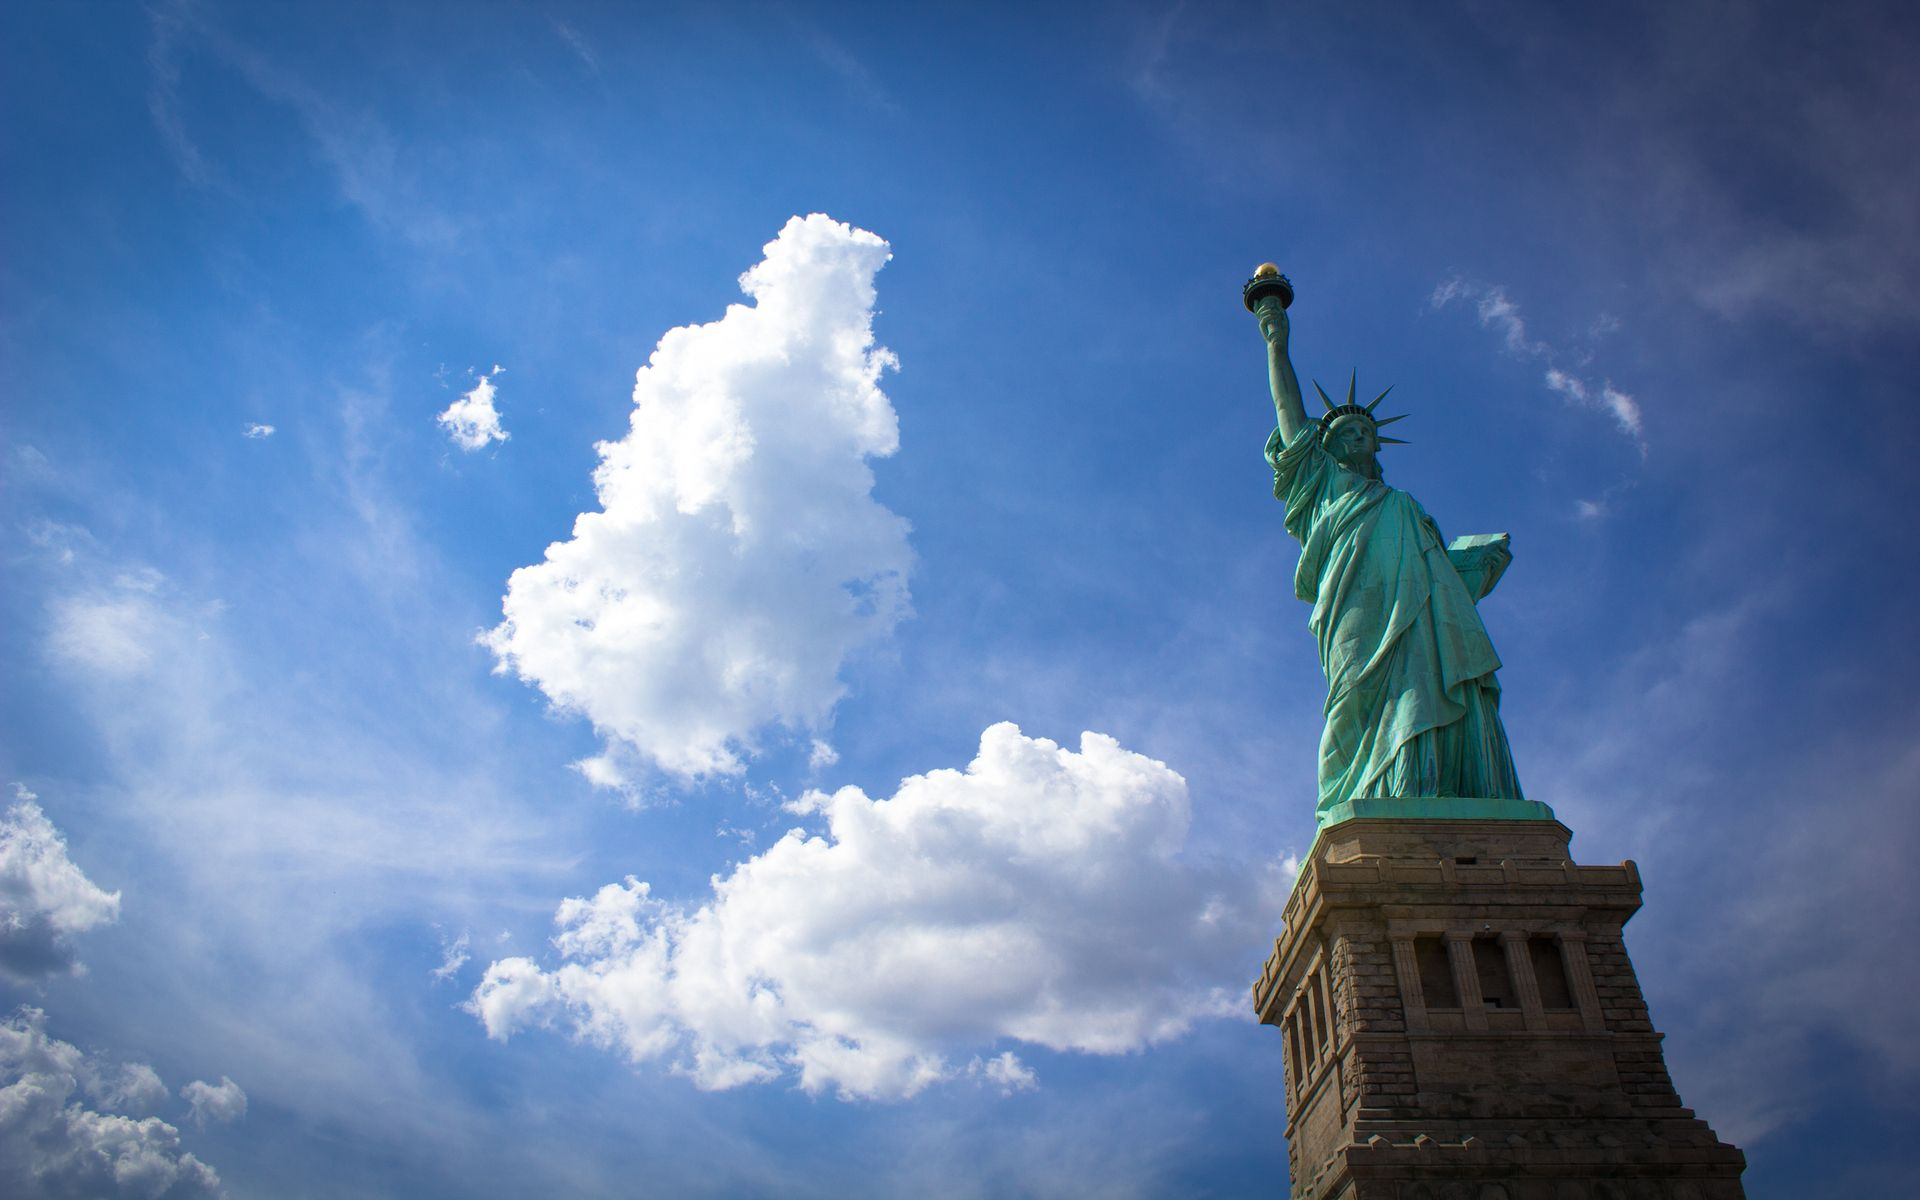 Hd wallpaper usa - Hd Wallpaper Usa New York Statue Usa Wallpaper